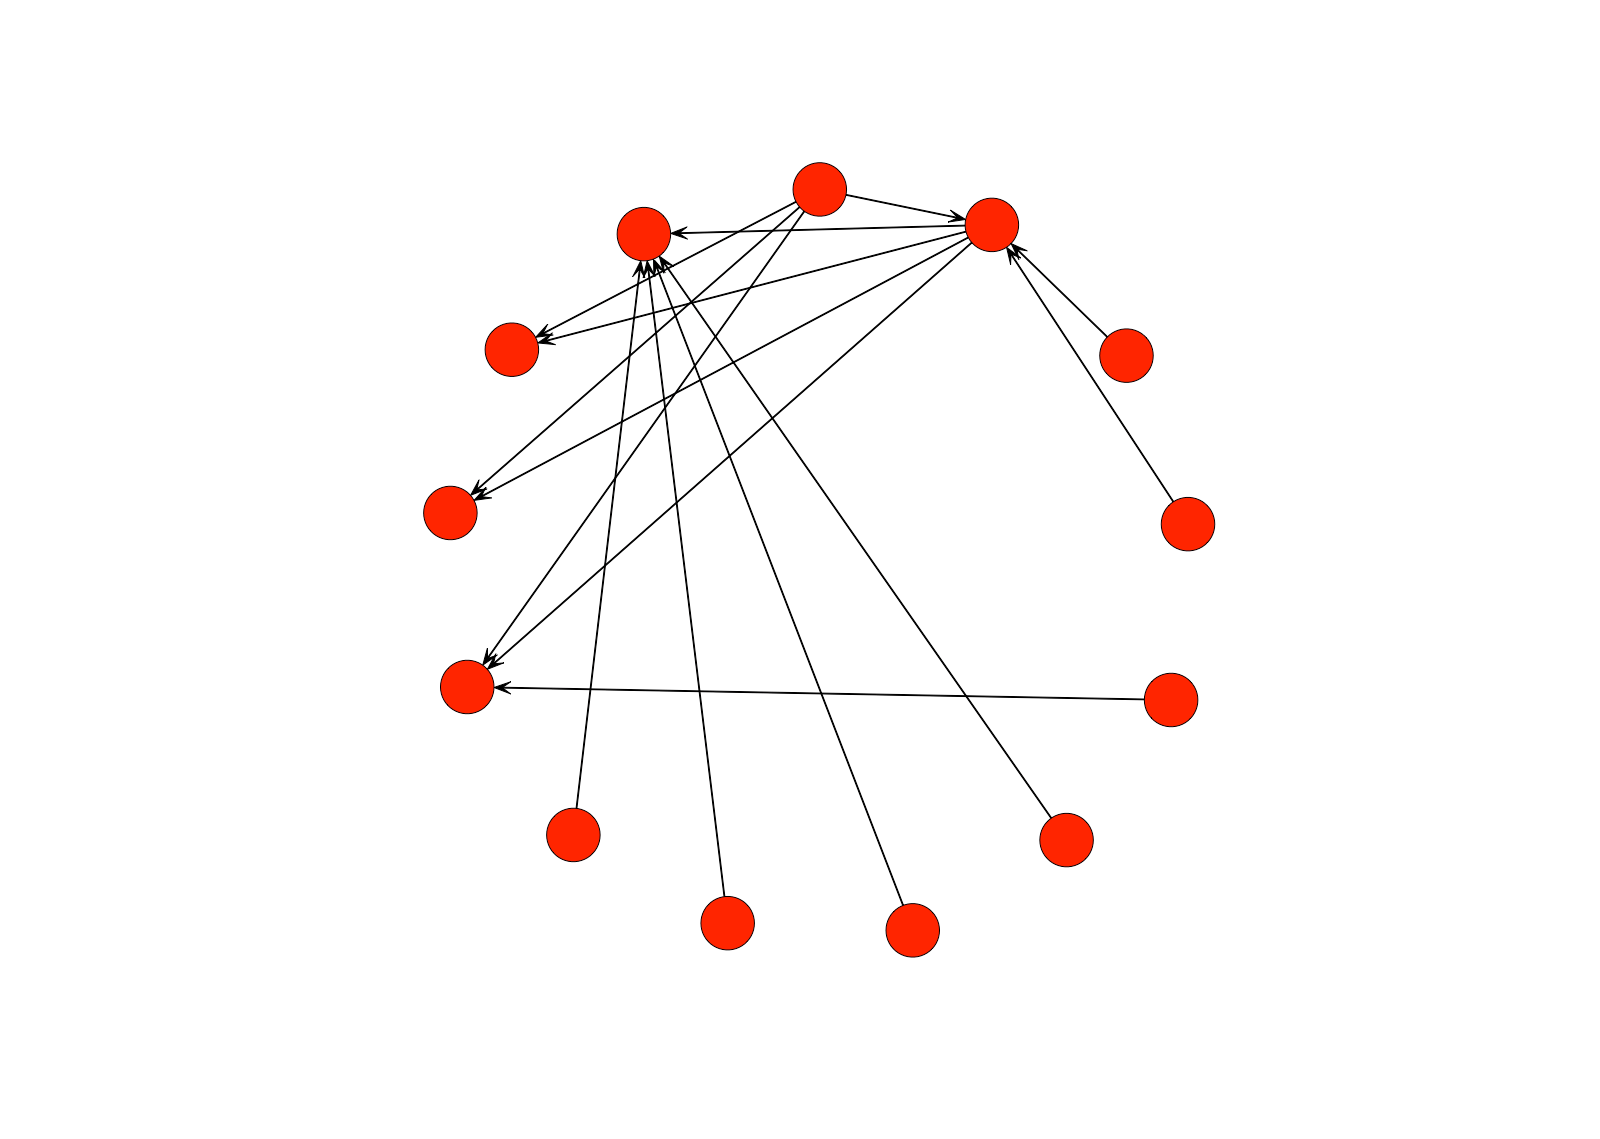 Introduction To Networkysis With R